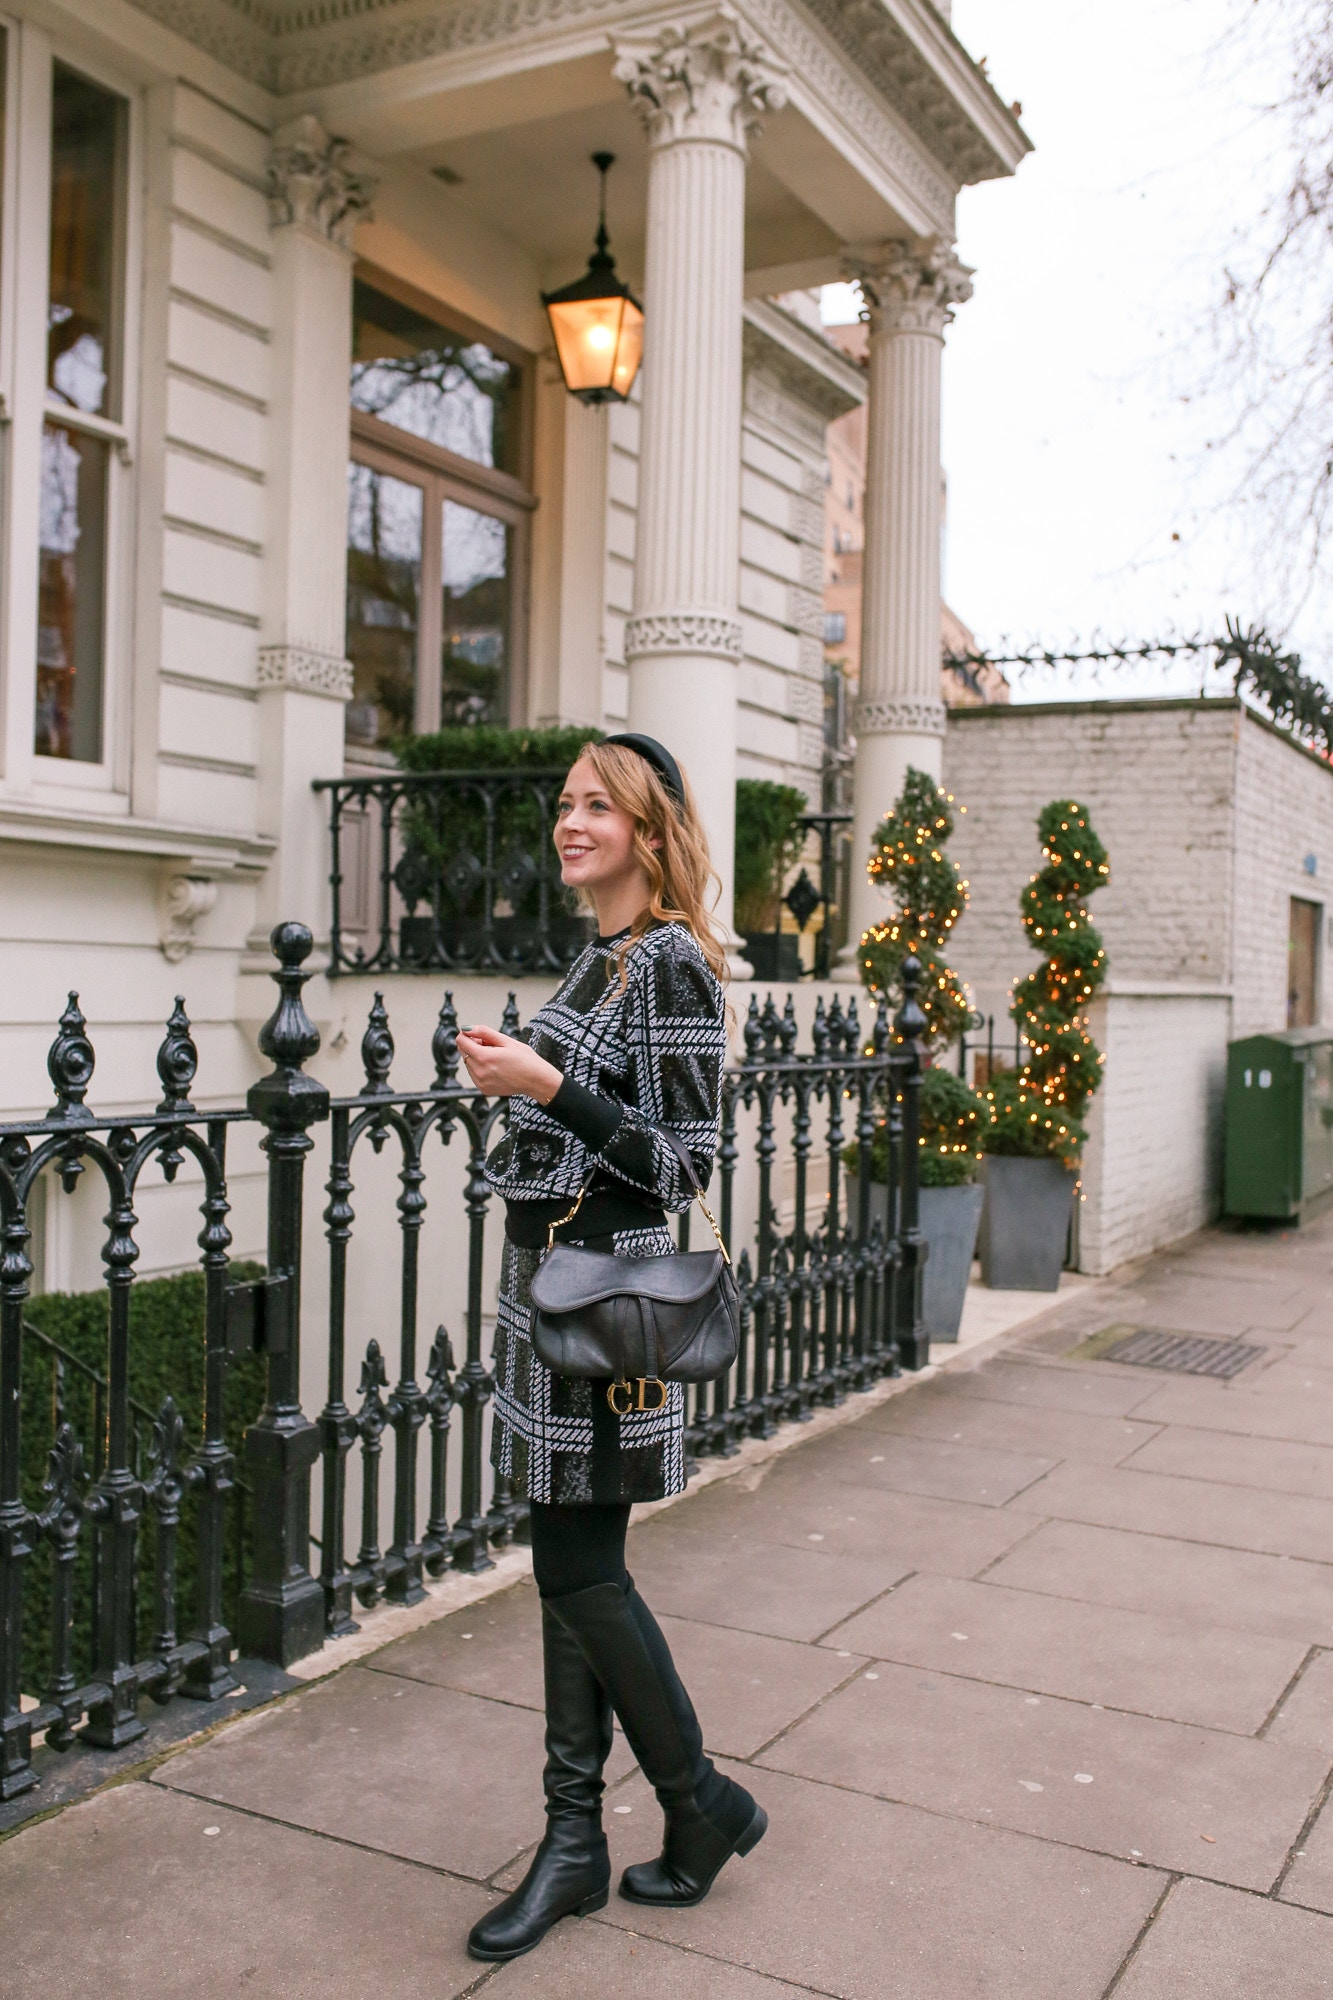 What I wore in London: Ted Baker Hoopss Sequin Check skirt & matching sequin sweatshirt, Stuart Weitzman 5050 Boots and a vintage Dior double Saddle bag